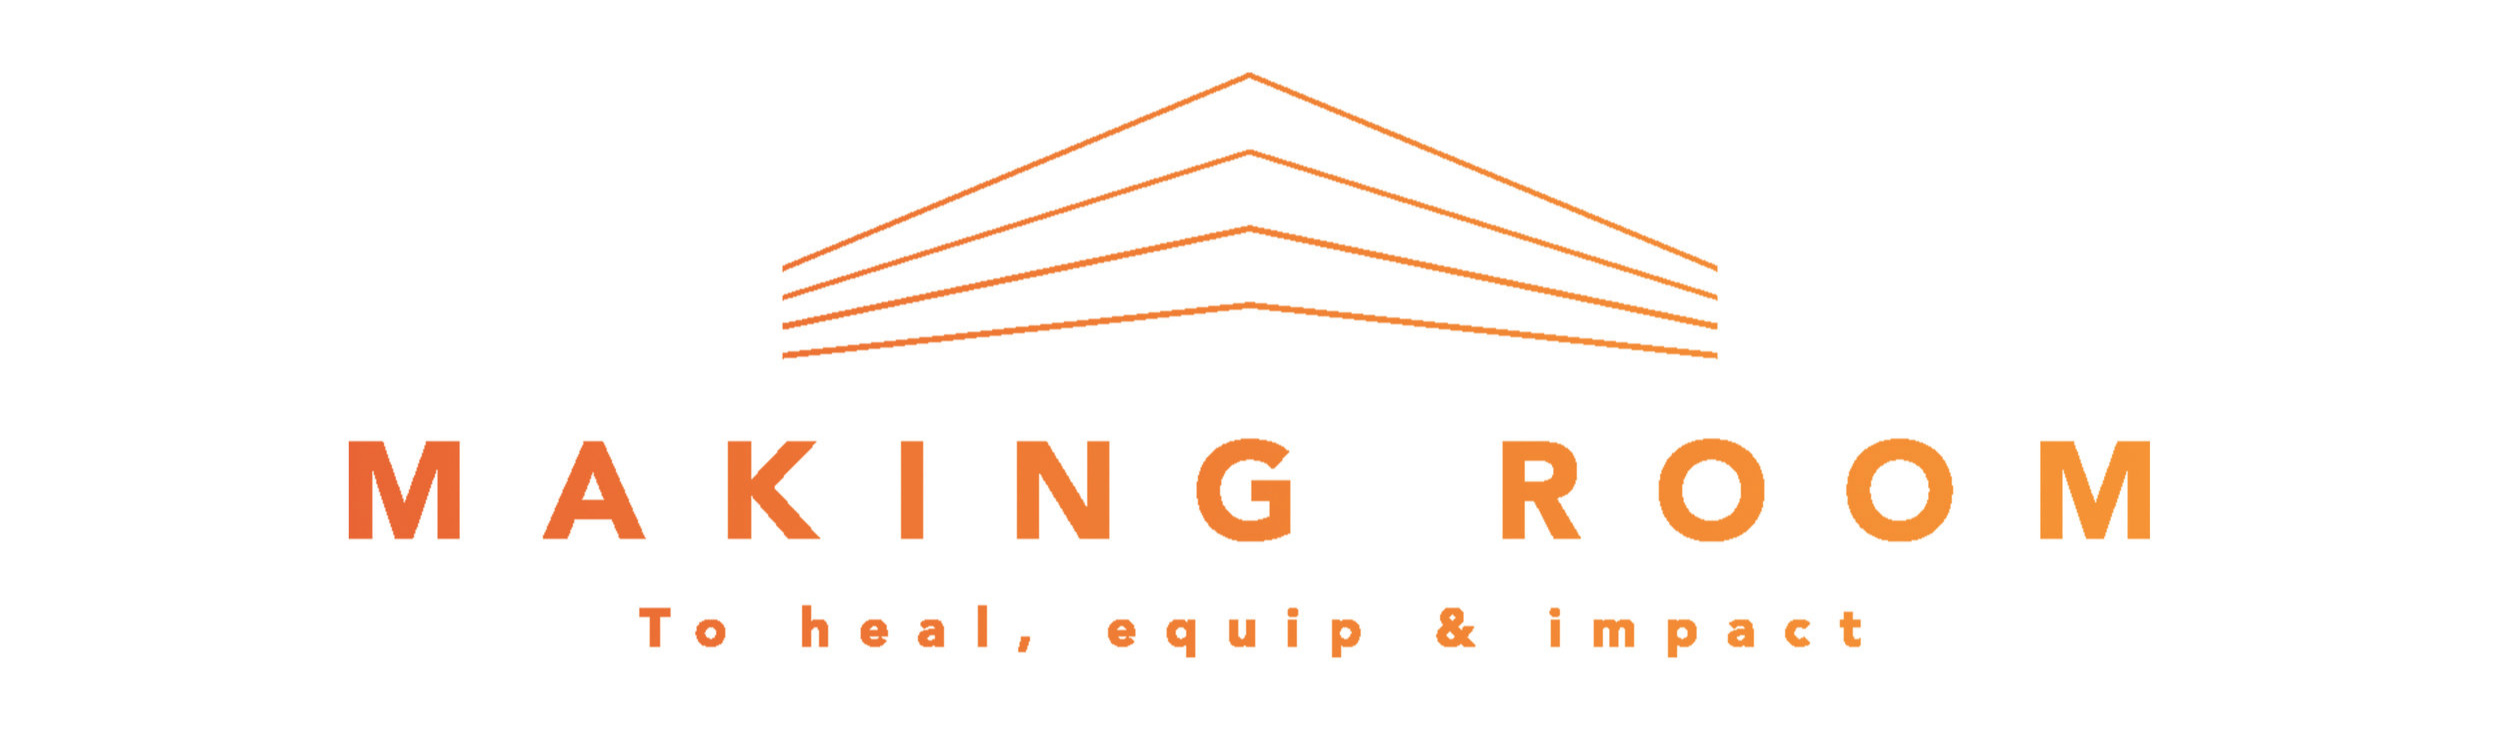 Making+Room_Logo_Orange.jpg